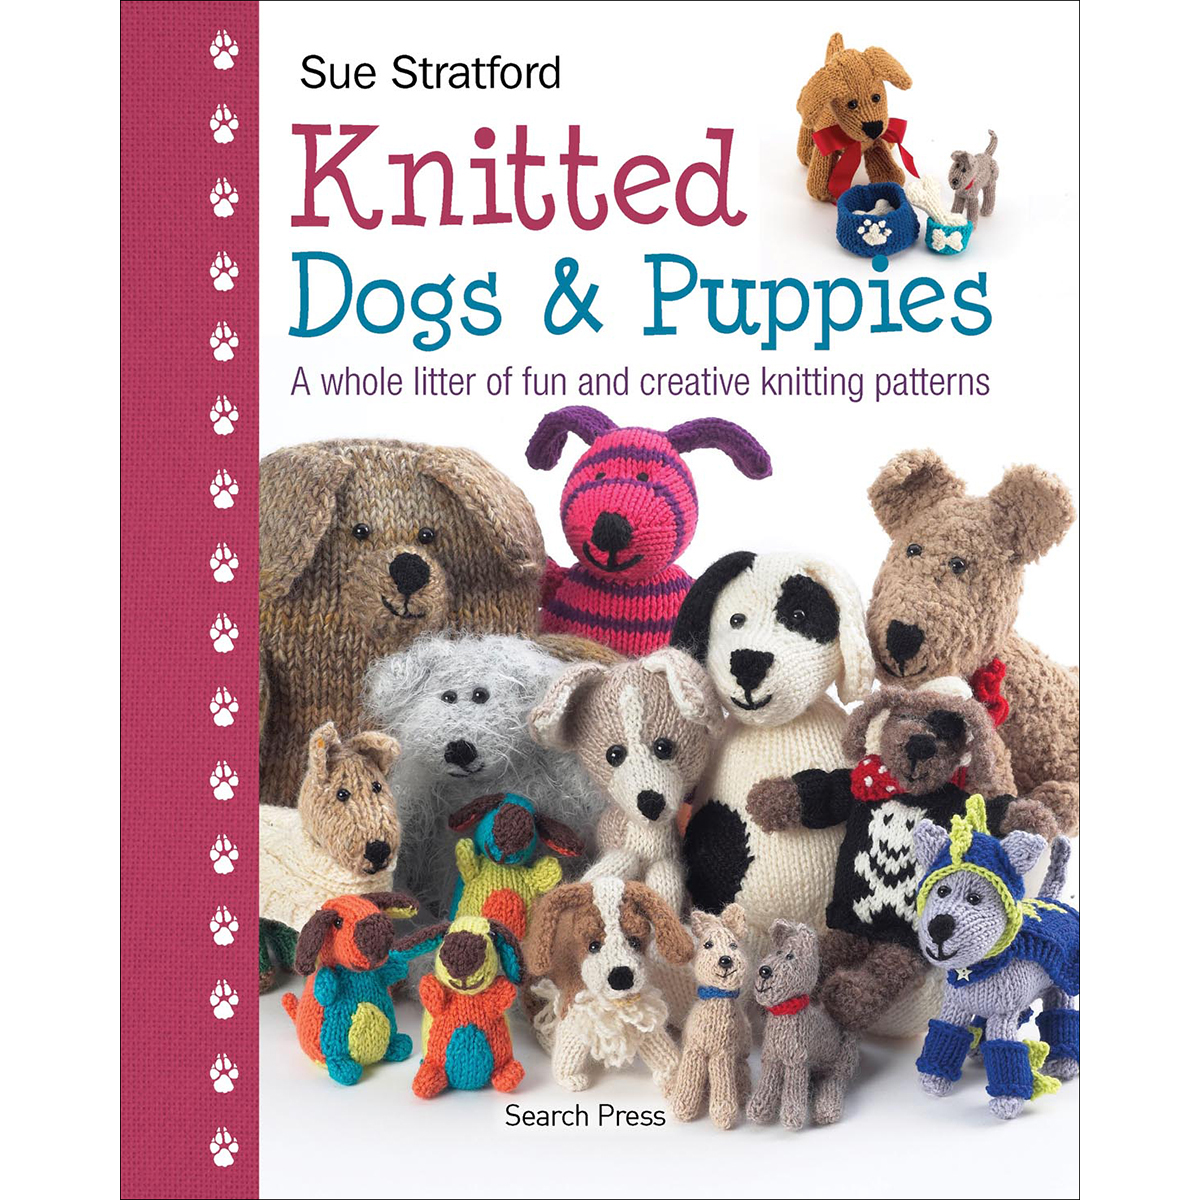 Knitting Patterns For Dogs Book : Knitted Dogs & Puppies